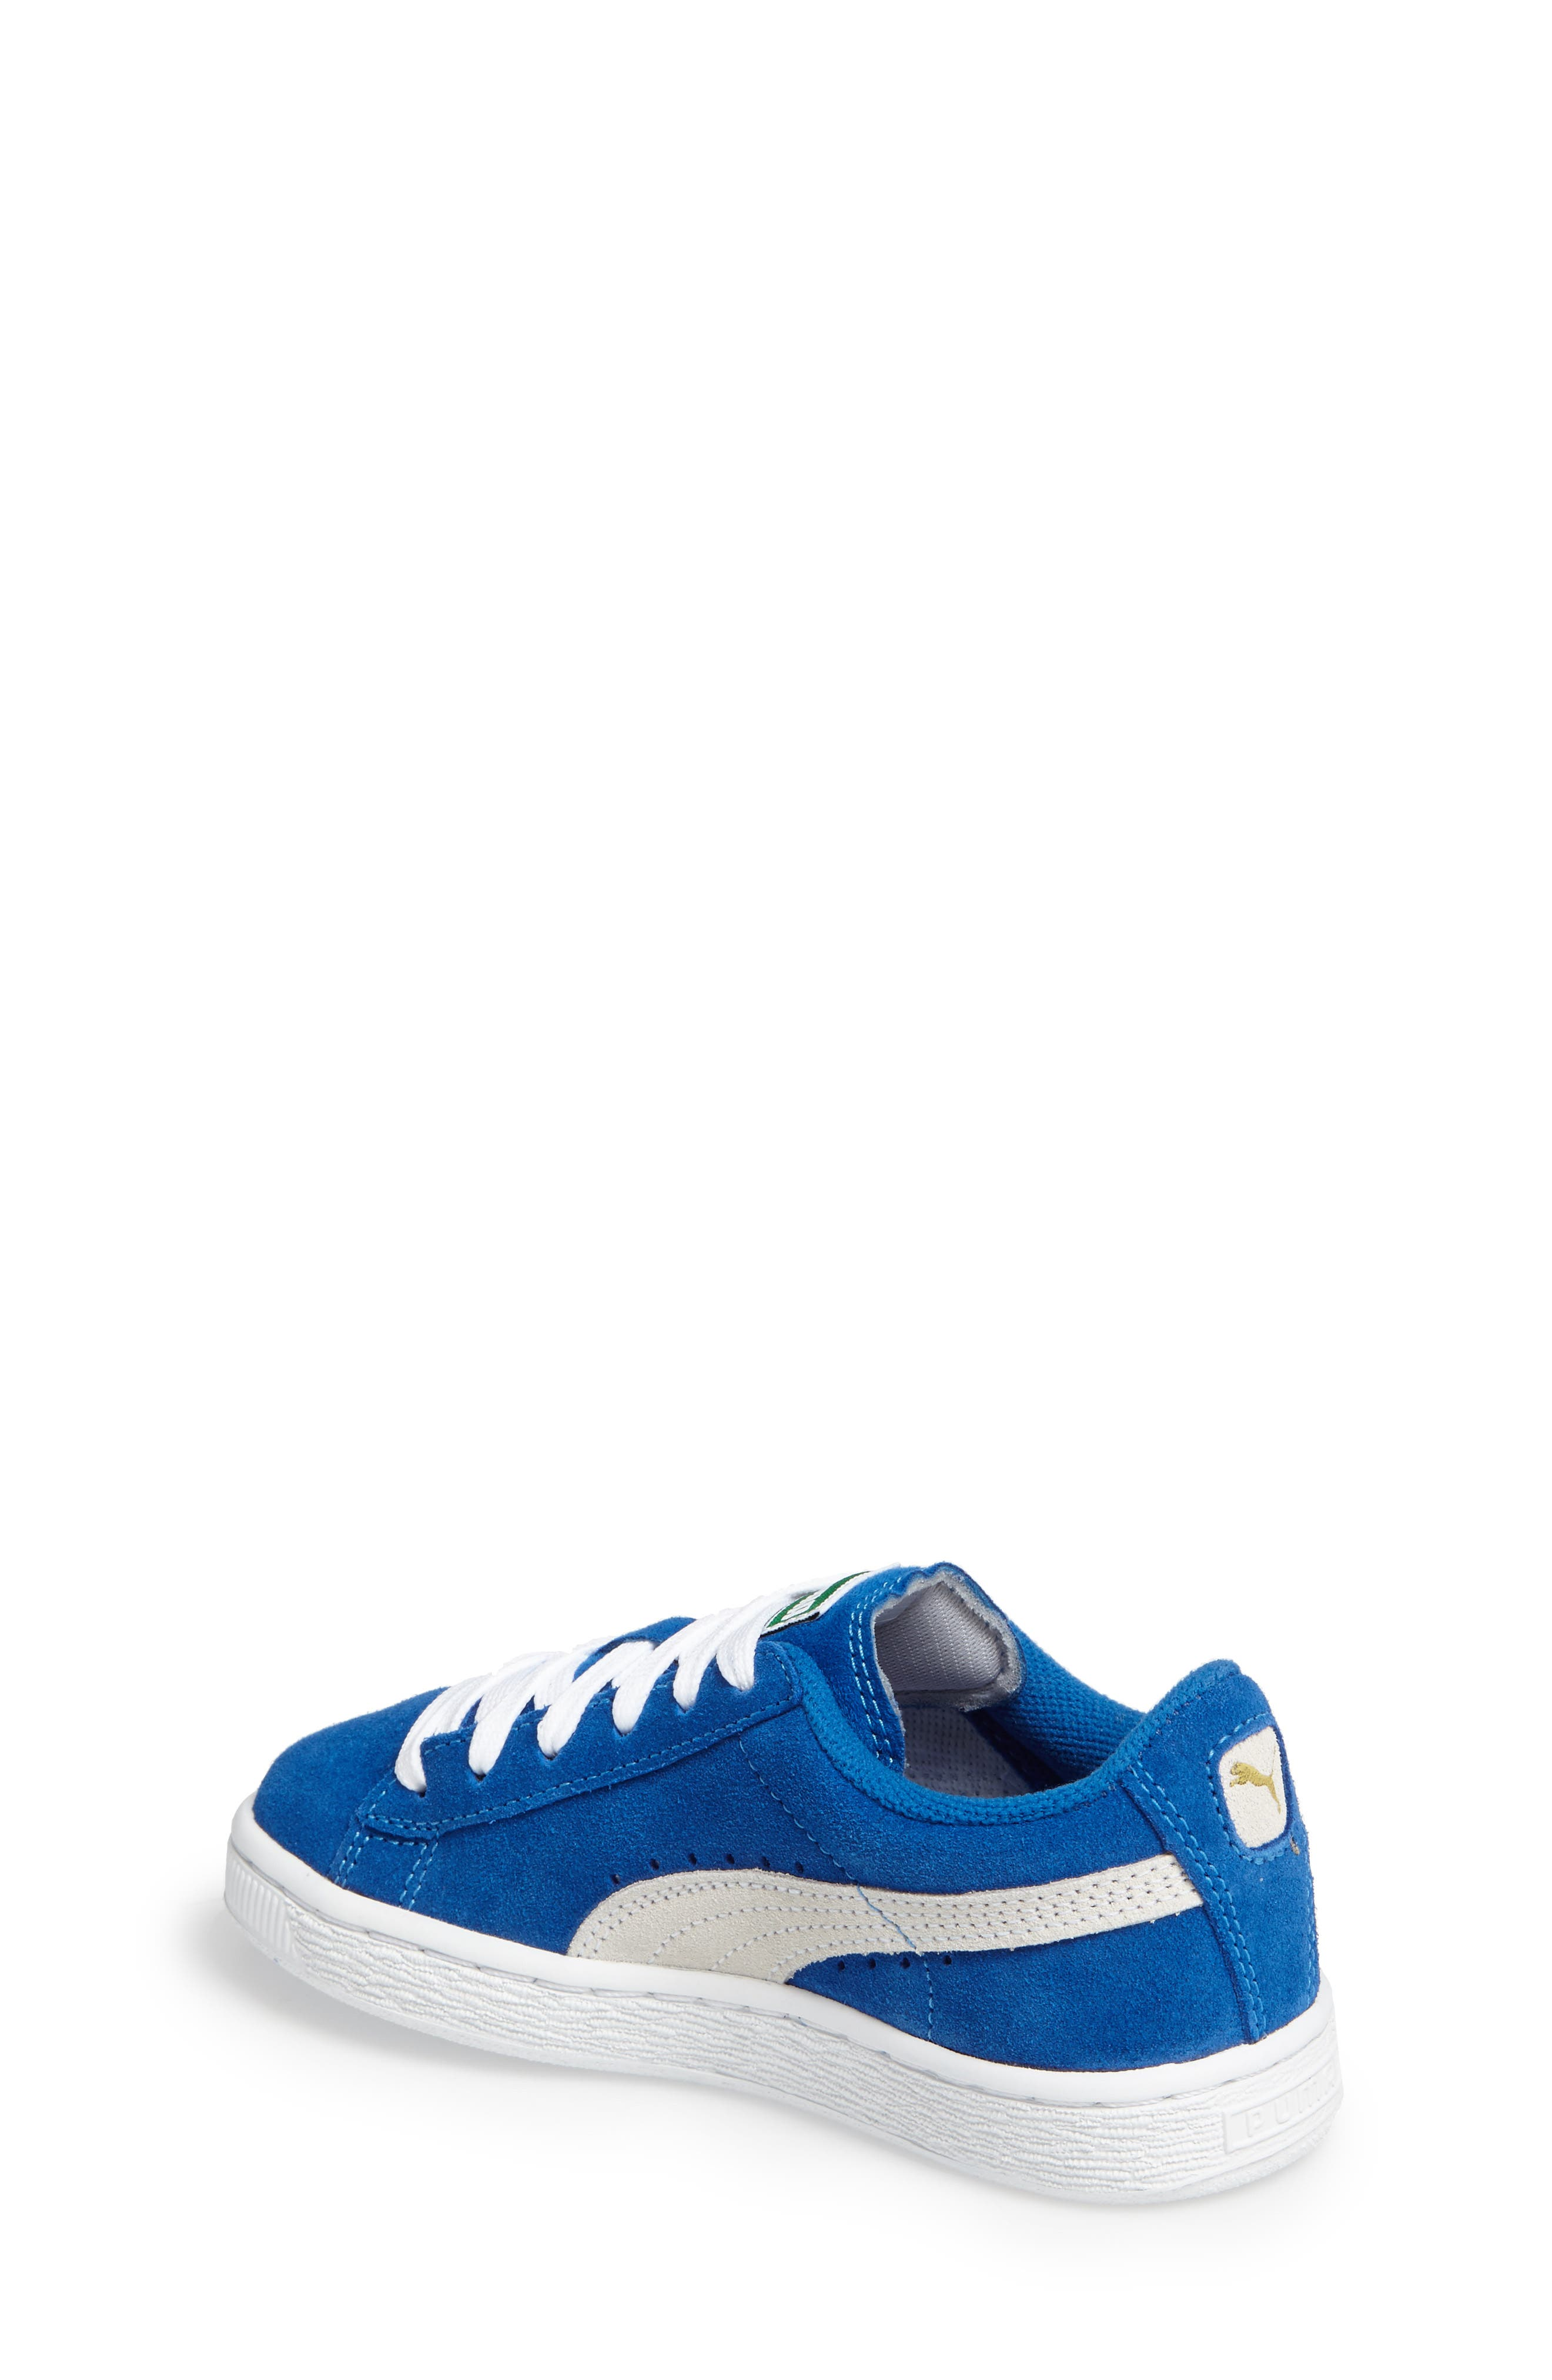 Suede PS Sneaker,                             Alternate thumbnail 2, color,                             Blue